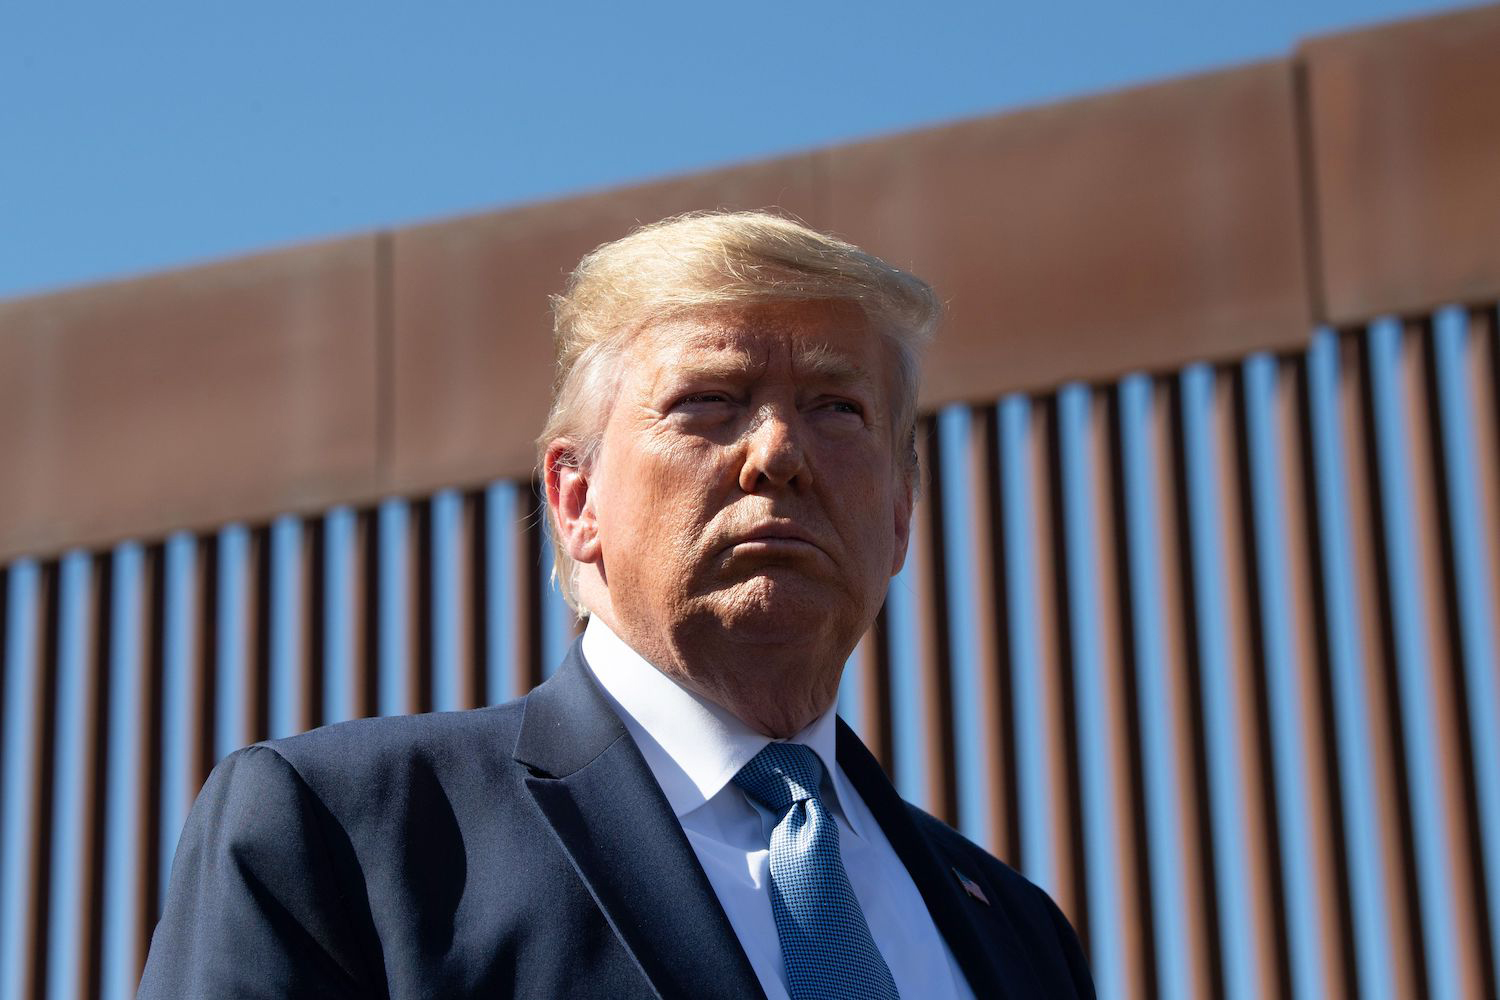 Trump Uses European Deterrence Funds to Build Border Wall